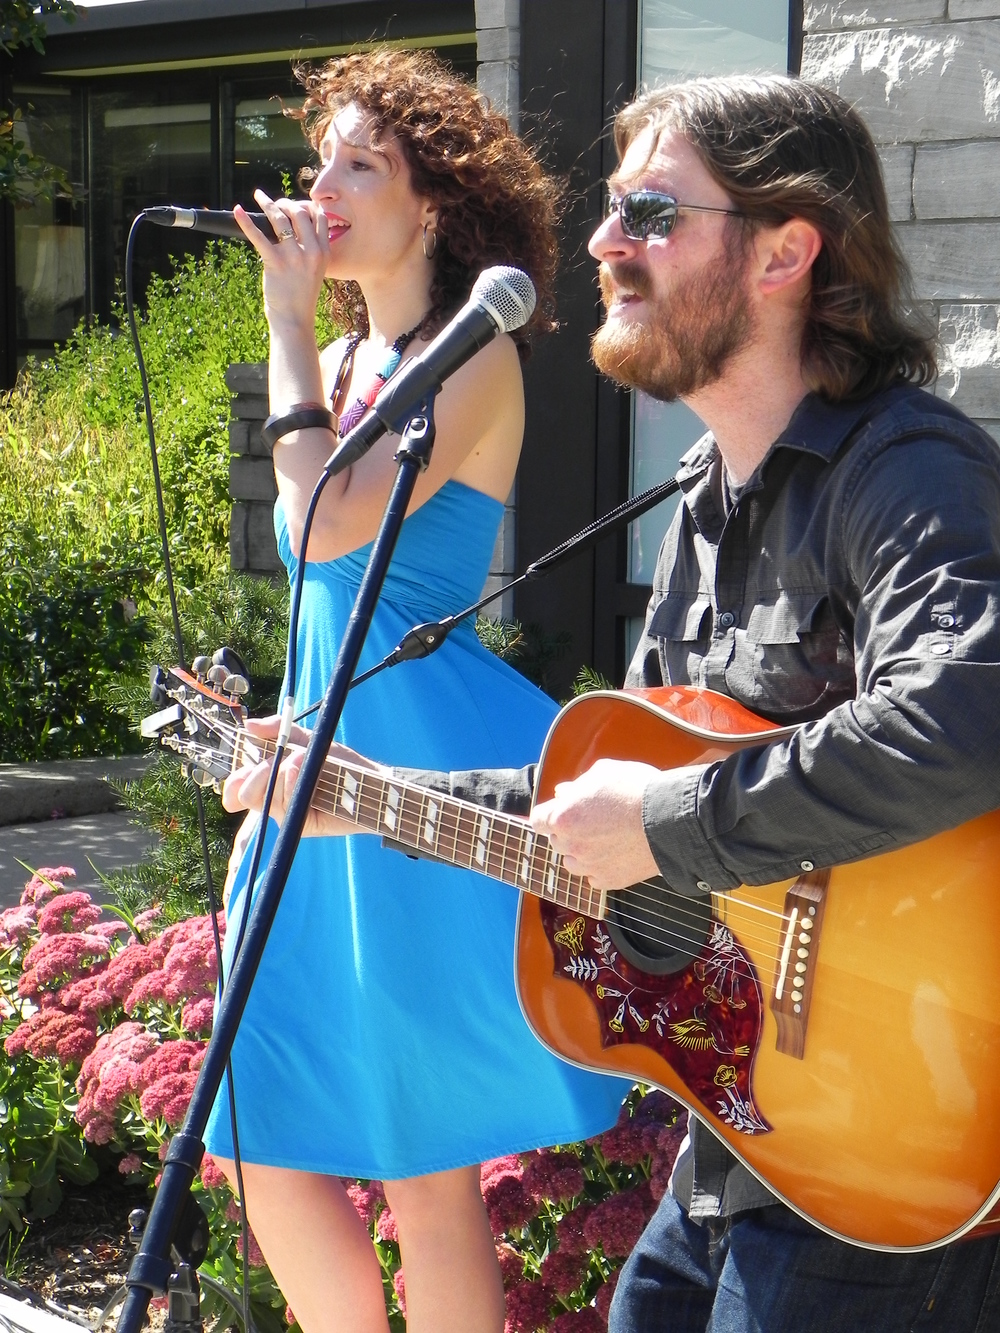 Heather Christine and Matt Zaddy Google image from https://www.modernmississauga.com/main/2016/6/9/modern-arts-river-north-mississaugas-masterful-musical-duo